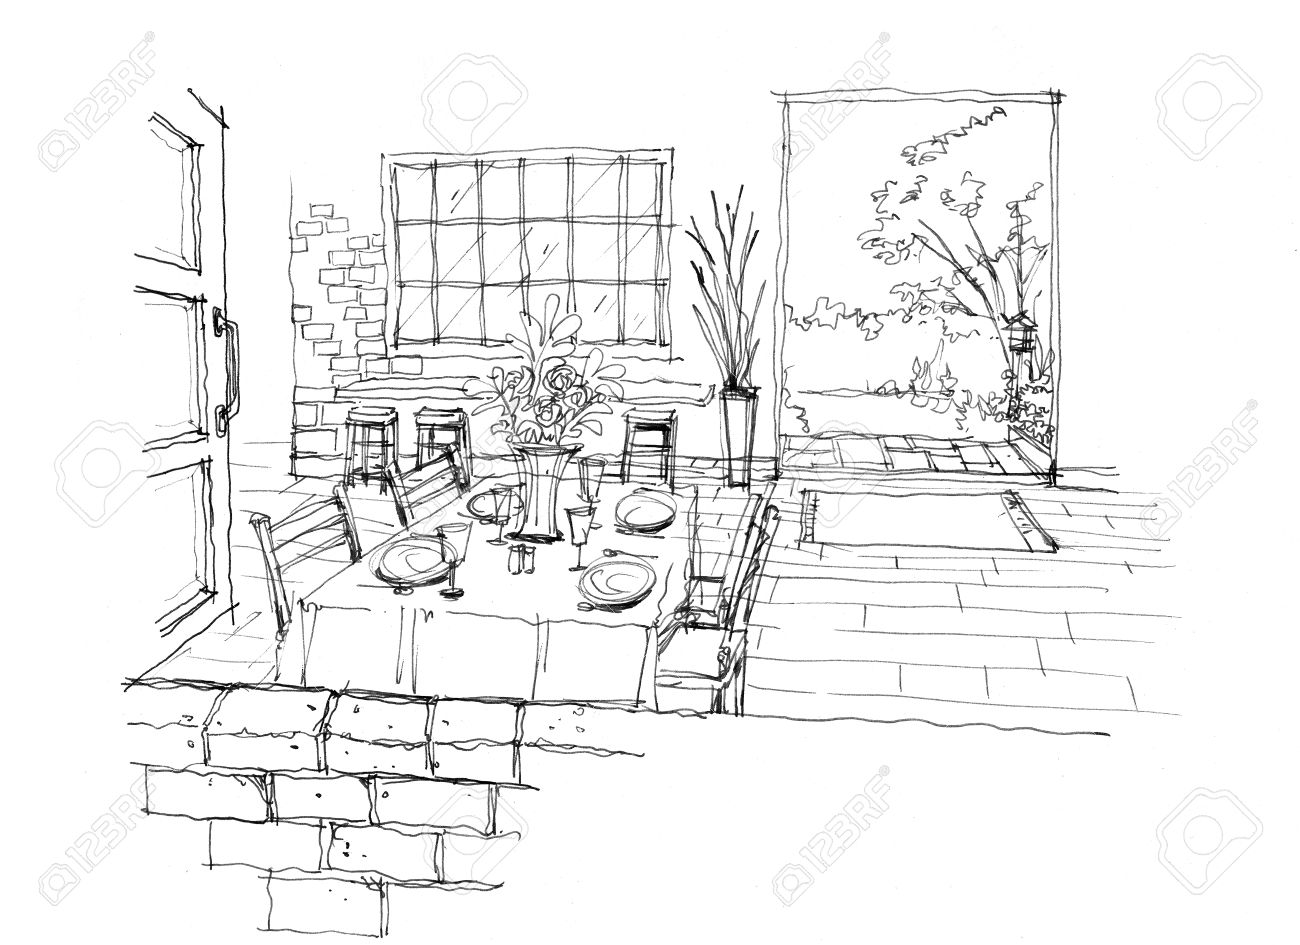 Cafe drawing interior - Cafe Coffee Shop With Brick Wall Vintage Style Decoration Interior Hand Drawing Illustration Stock